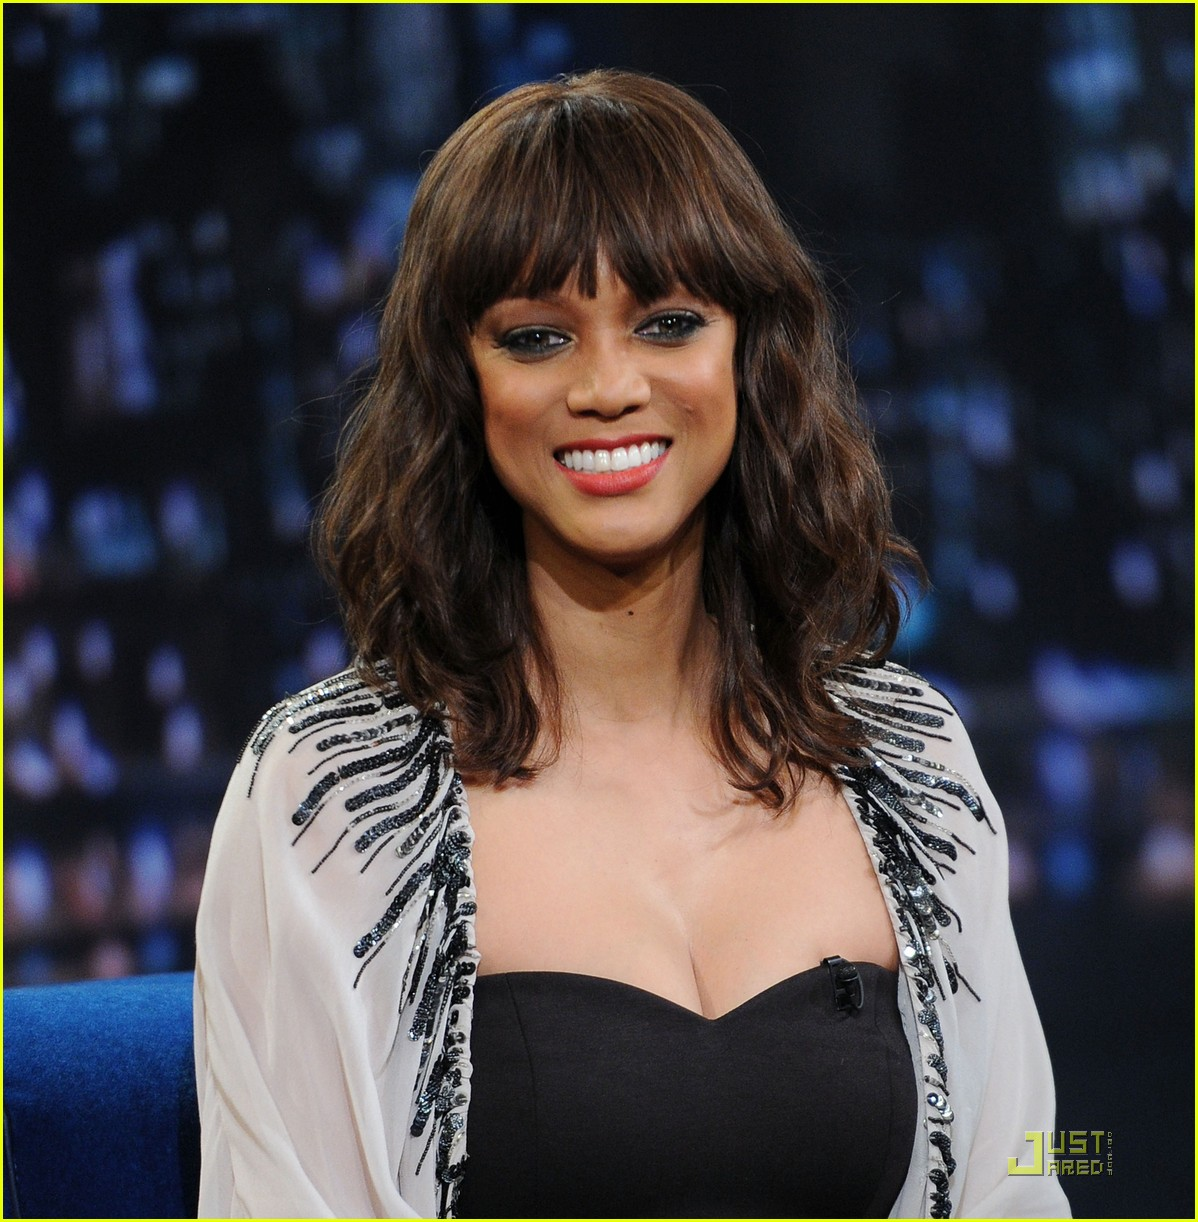 Tyra Banks Biography